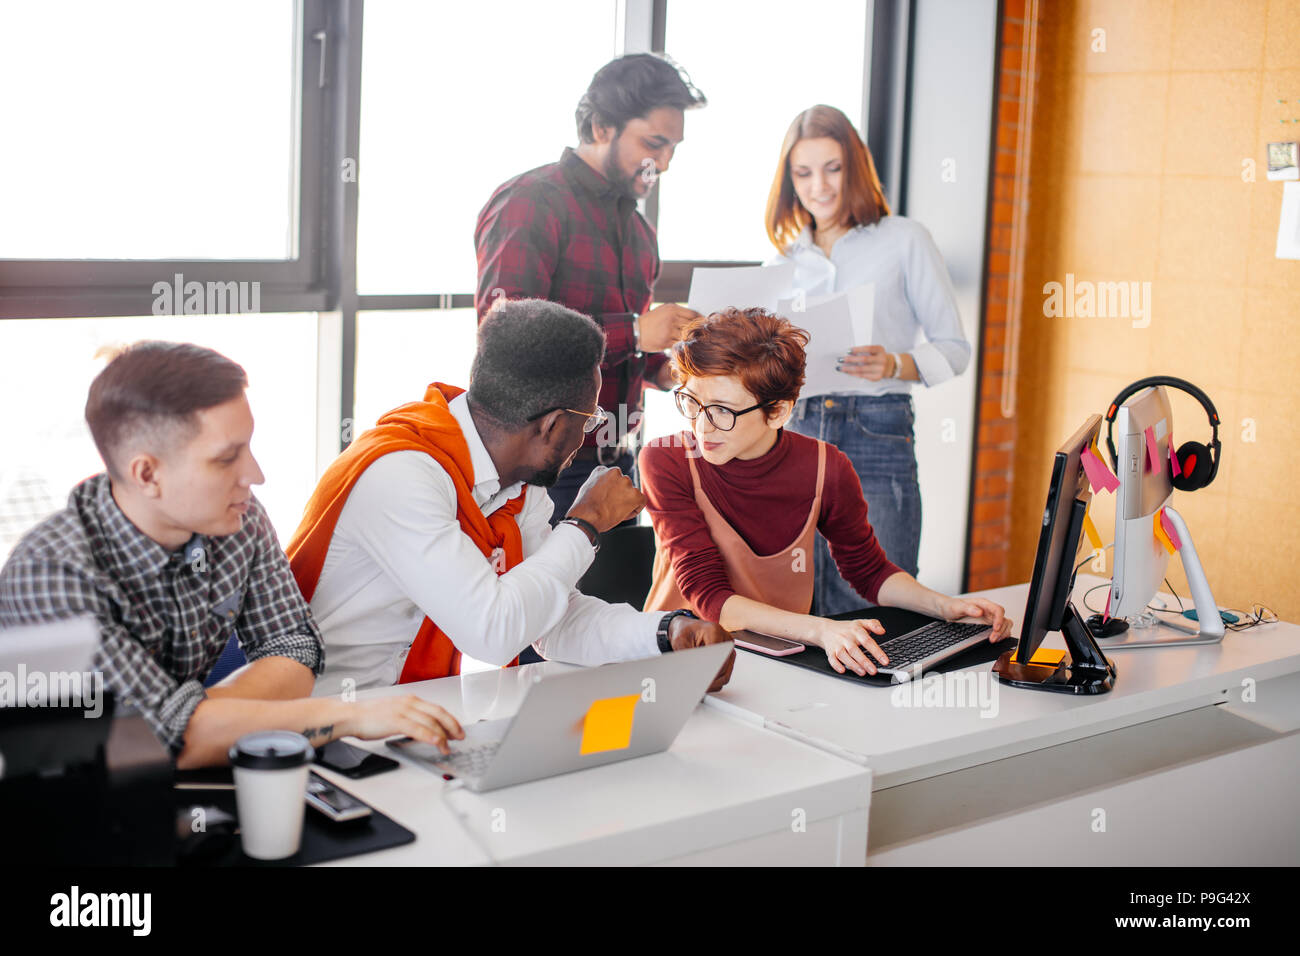 African man and pleasant red-haired woman are exchanging confidences at workplace among co-workers. closeup portrait - Stock Image